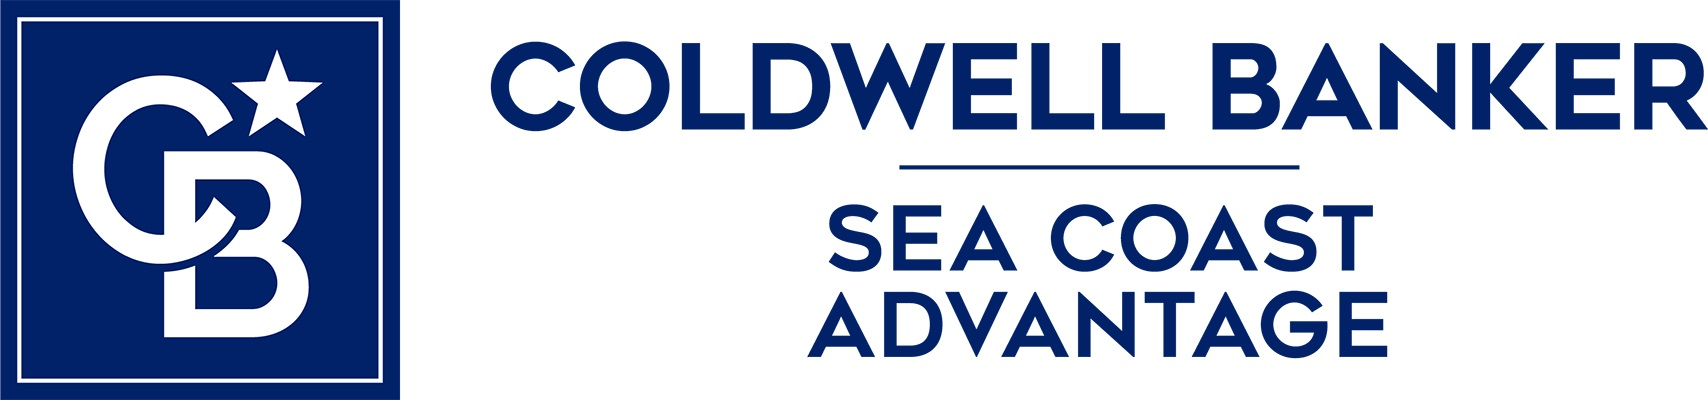 Christina Pitz - Coldwell Banker Sea Coast Advantage Realty